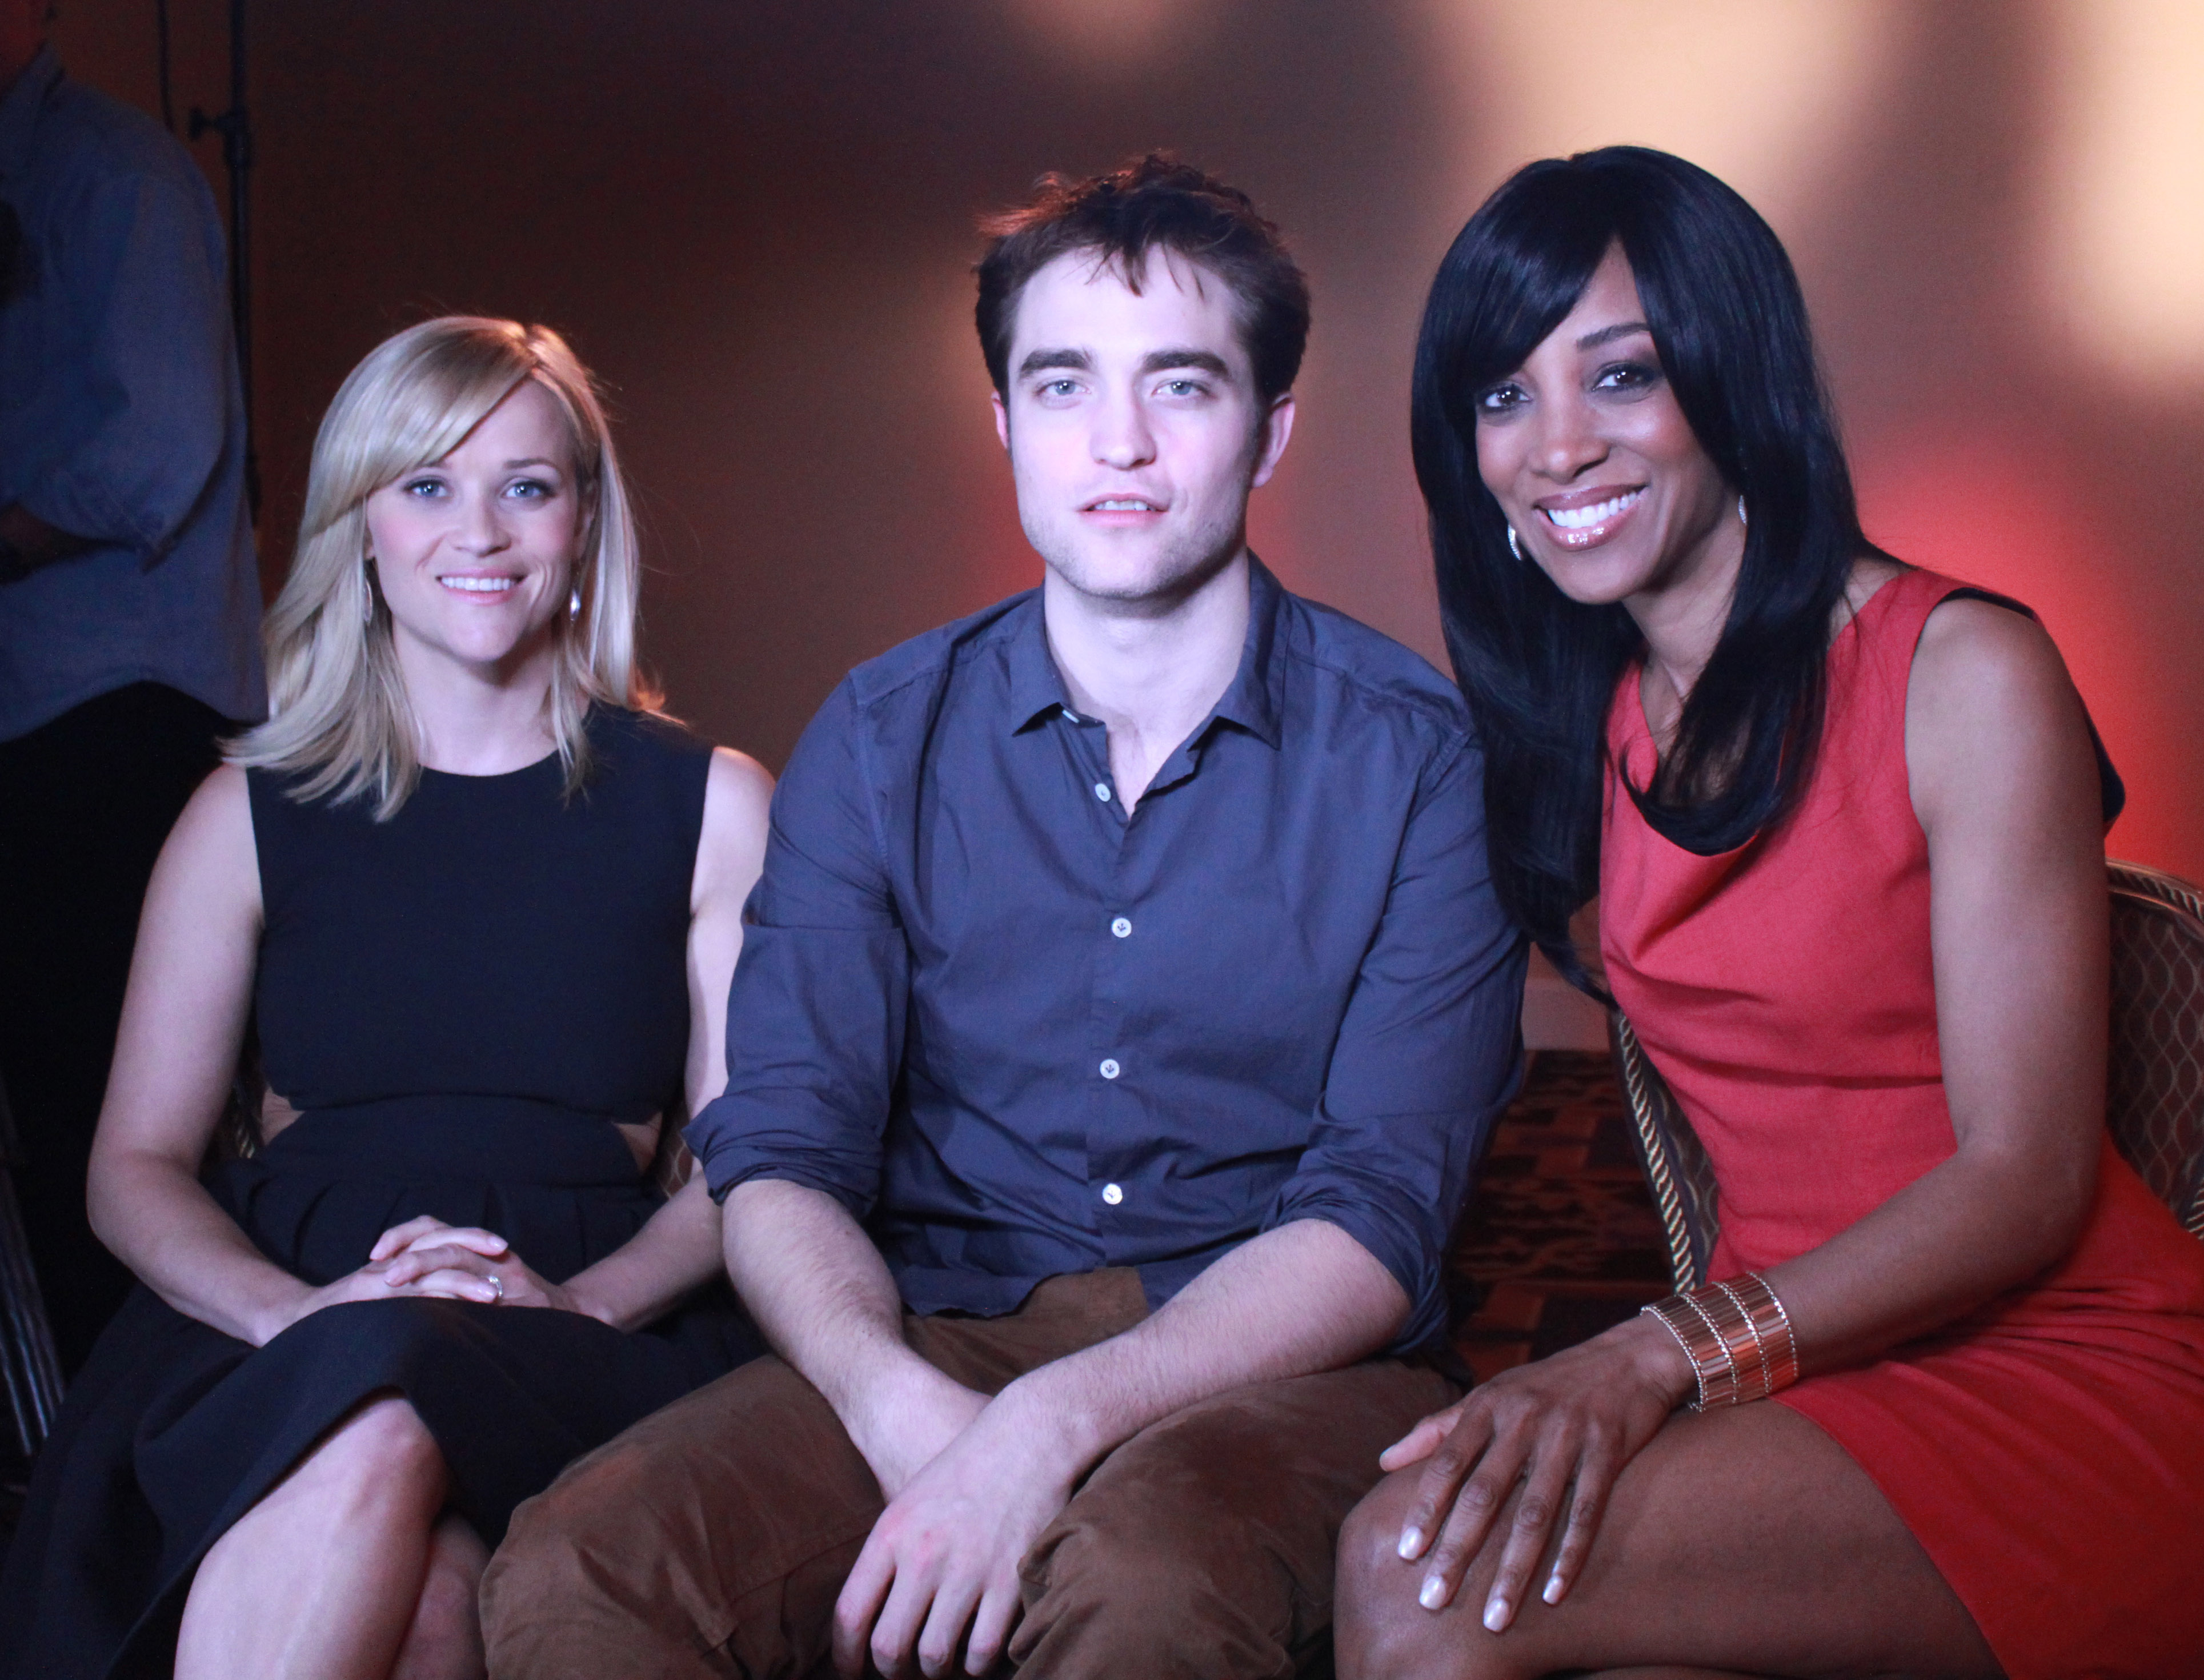 MTV Movie Awards: Reese Witherspoon Vows to Make Good